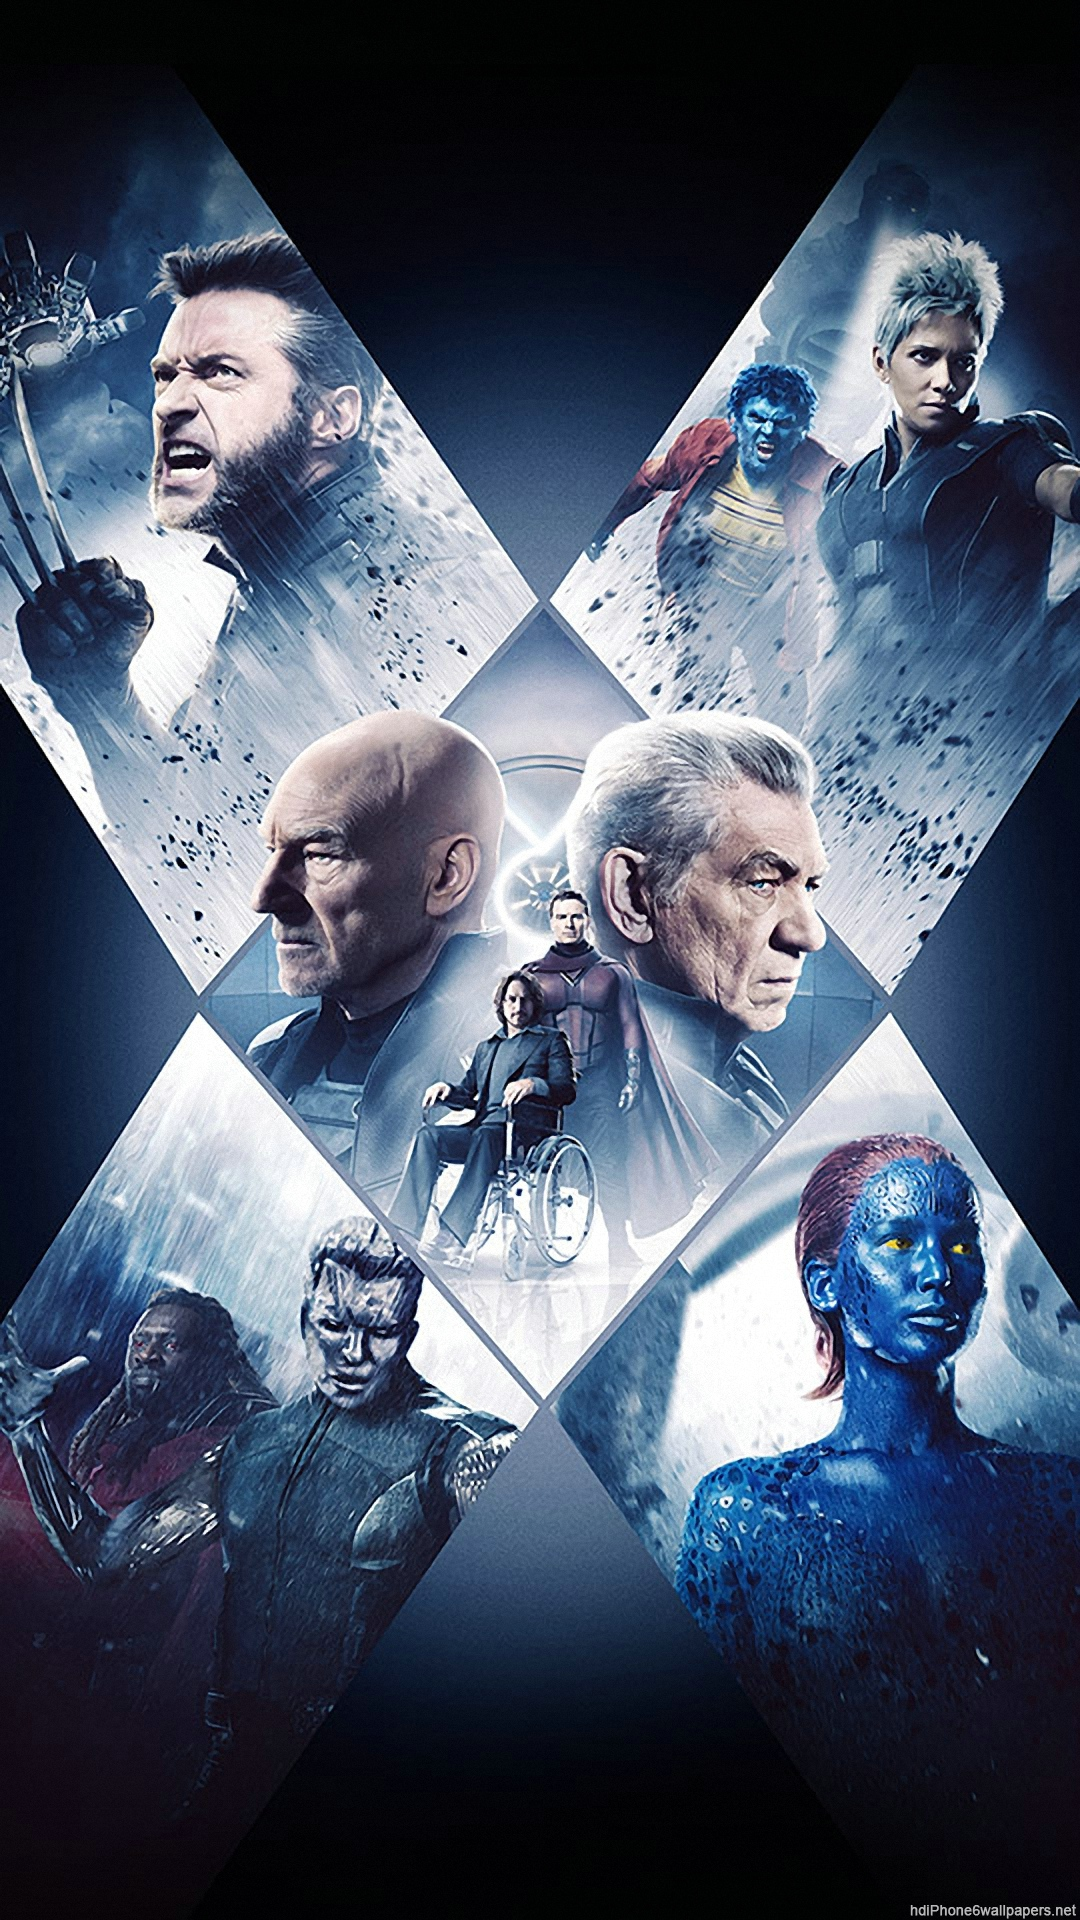 X Men Days Of Future Past Movie Poster 2153081 Hd Wallpaper